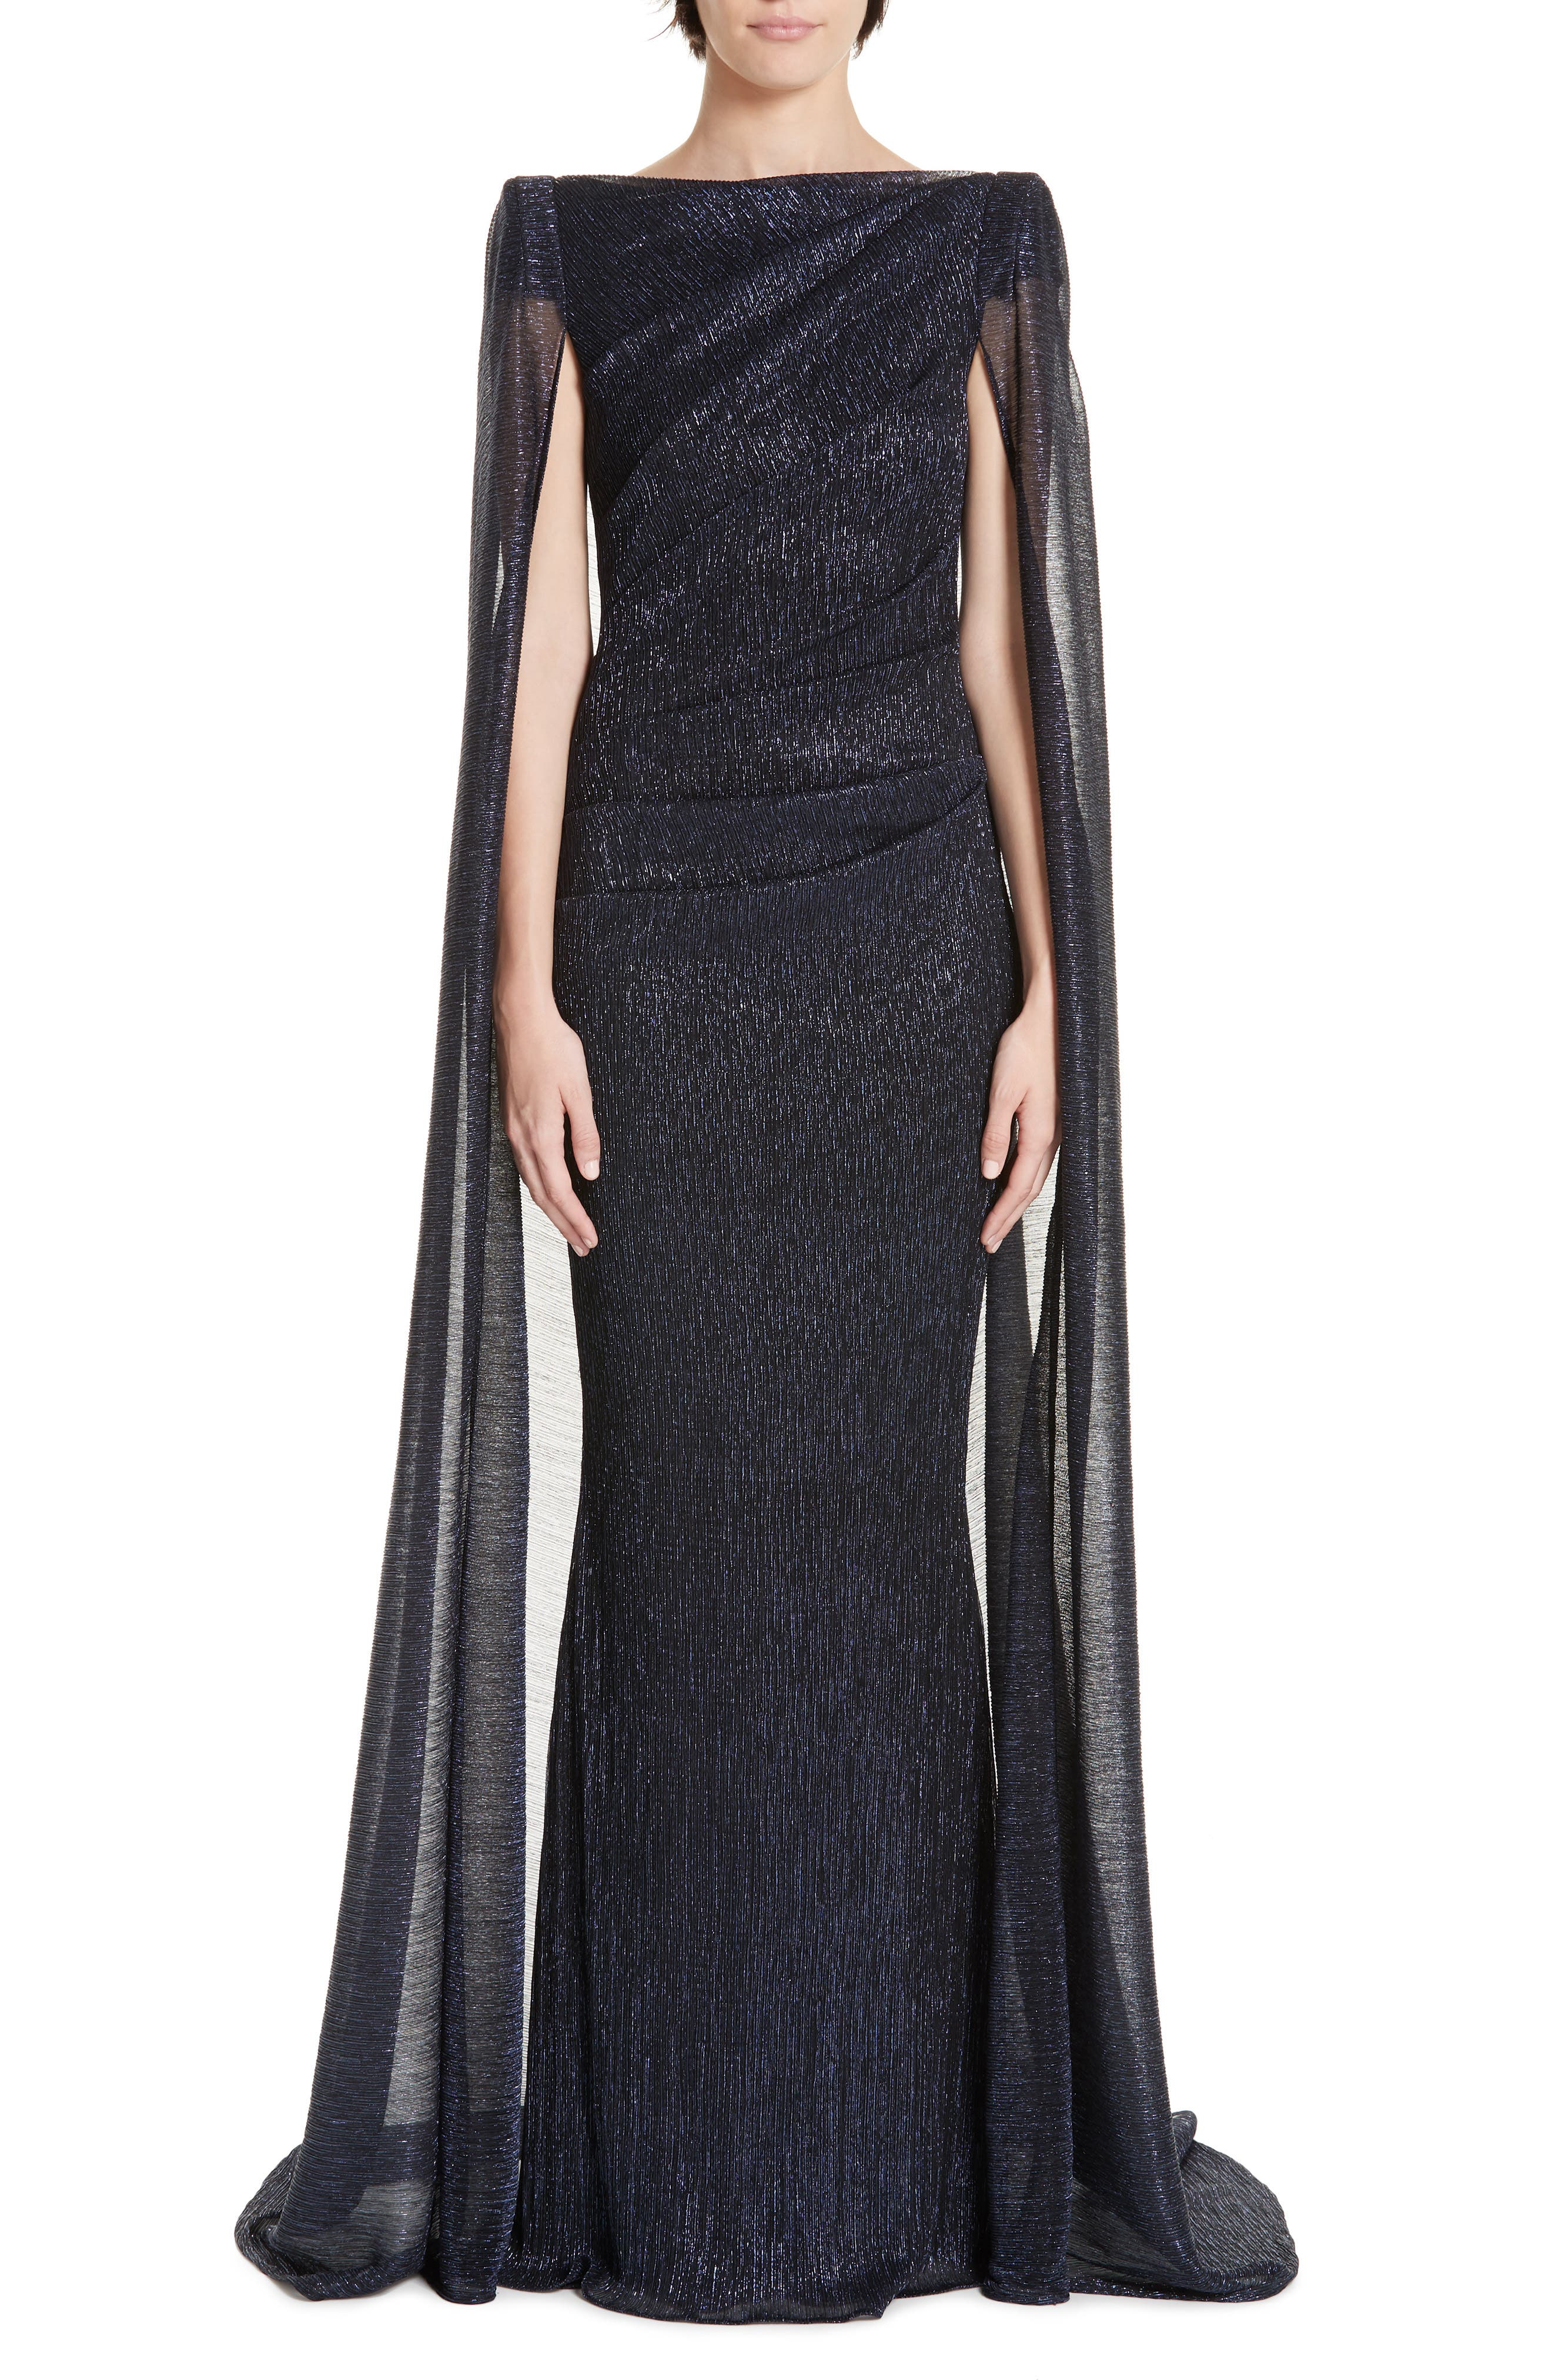 Talbot Runhof Off The Shoulder Sequined Dress With Cape